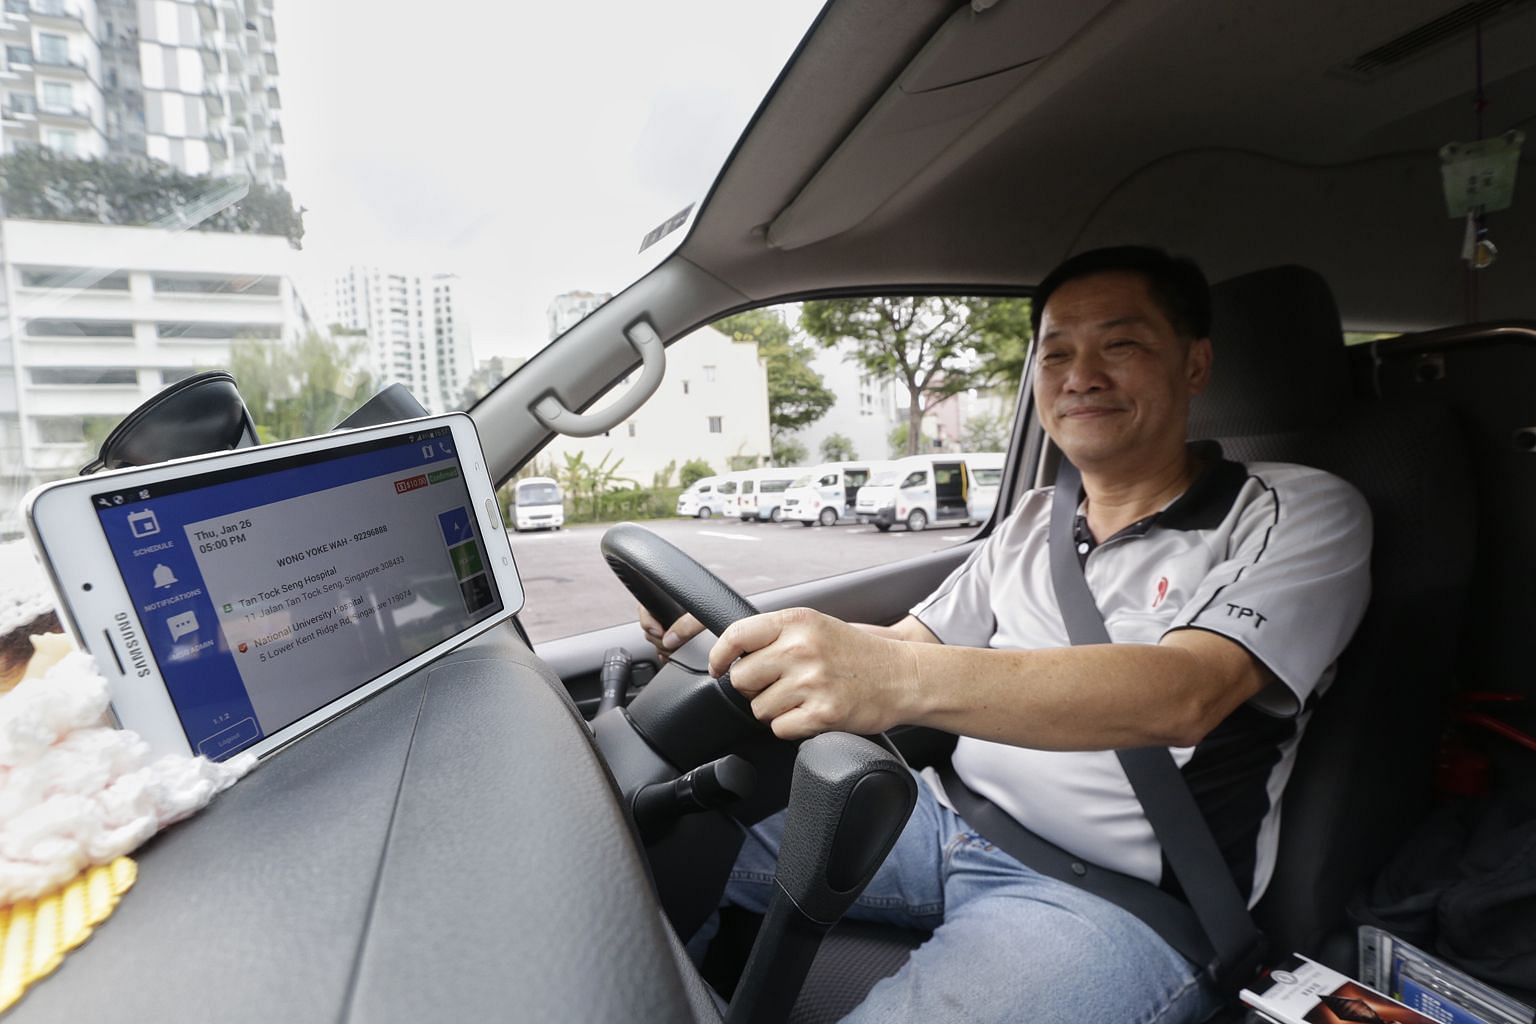 Handicaps Welfare Association van driver Ng Song Liang uses the HeartWheels app to view his schedule from a tablet, instead of depending on a pen and paper method and picking up phone calls from the office.